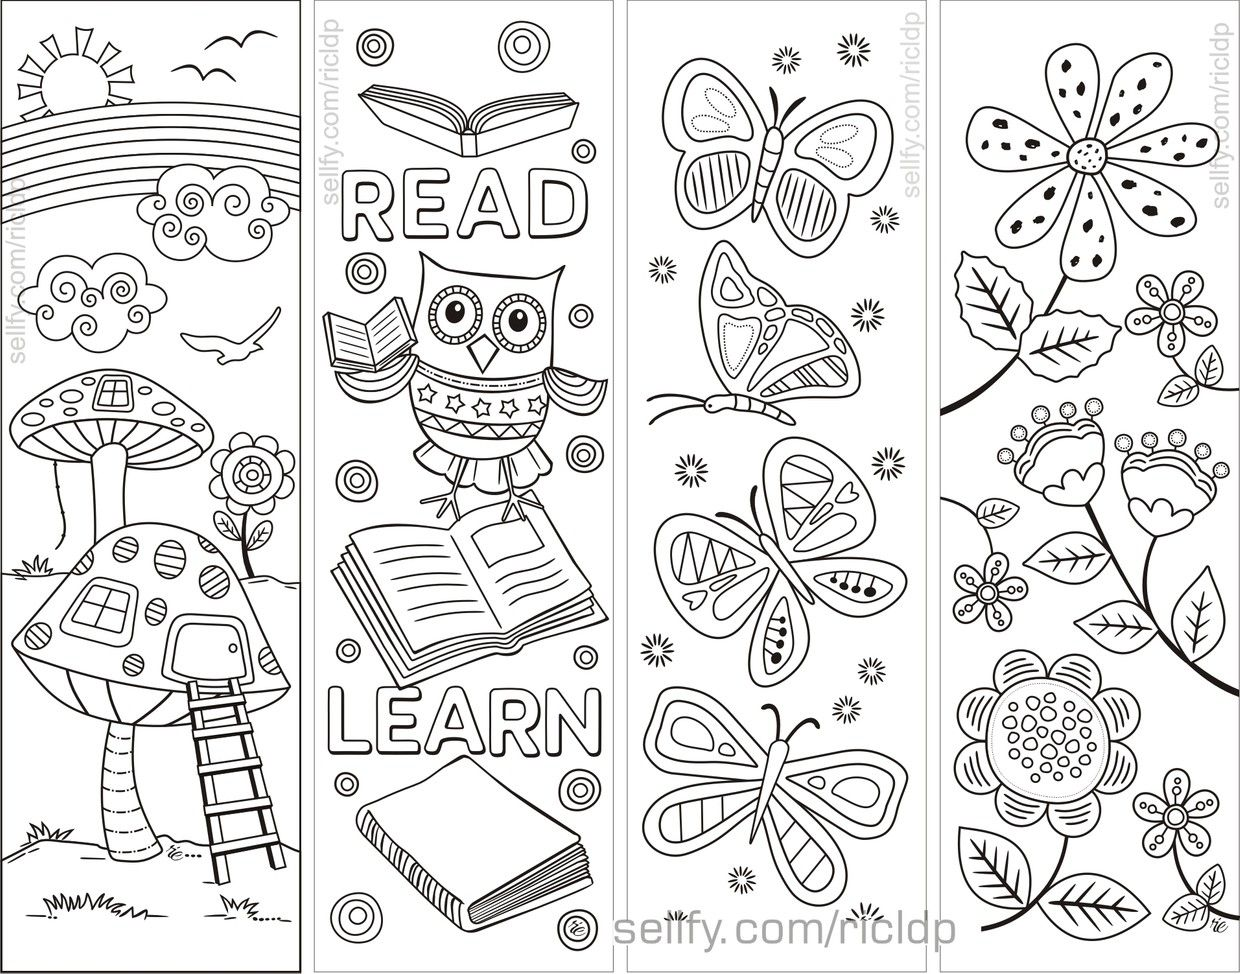 8 Simple Designs Coloring Bookmarks Coloring Bookmarks Coloring Bookmarks Free Detailed Coloring Pages